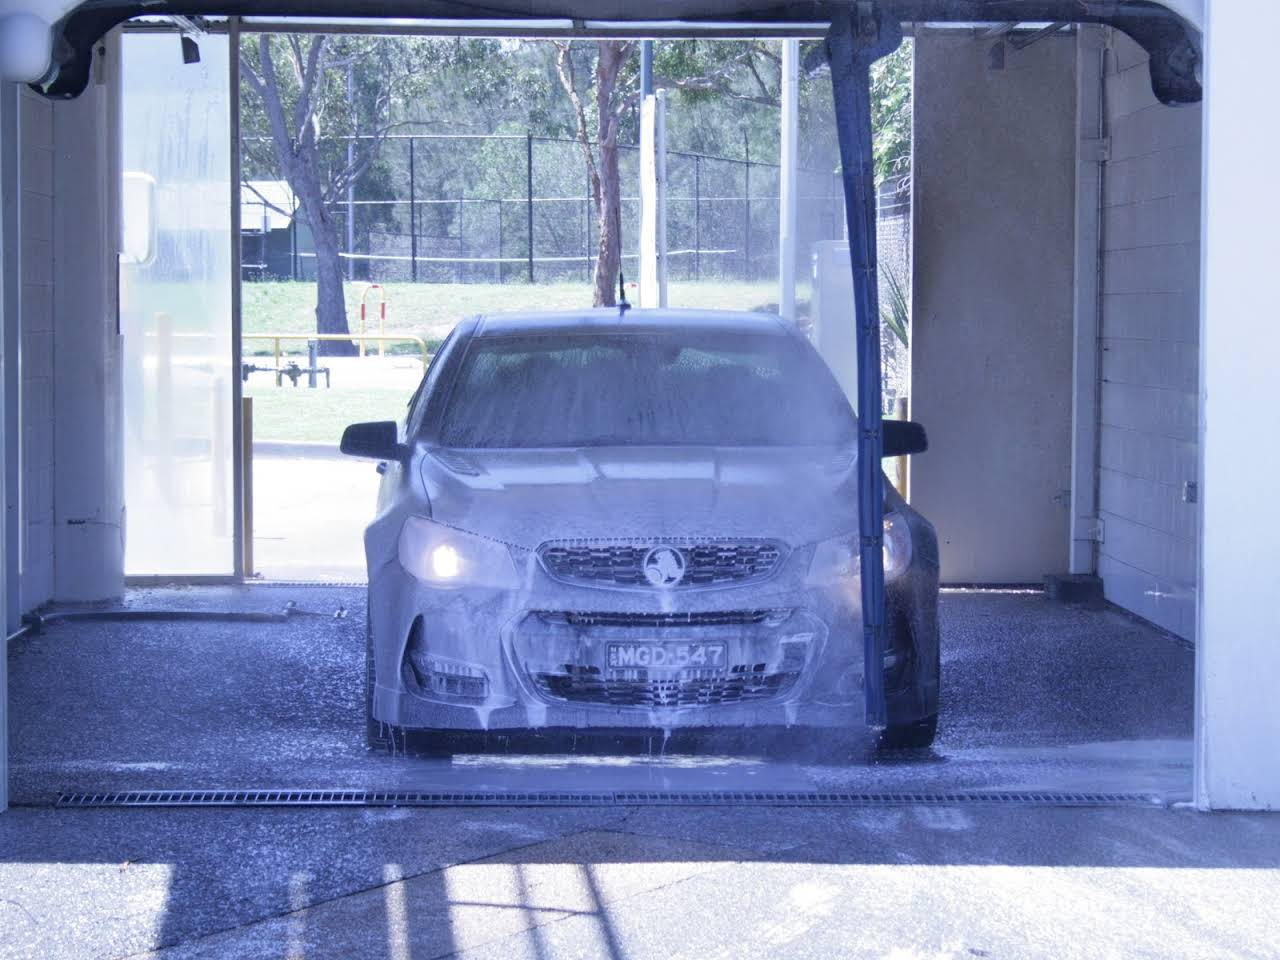 Clover carwash car wash in warners bay holiday madness solutioingenieria Images